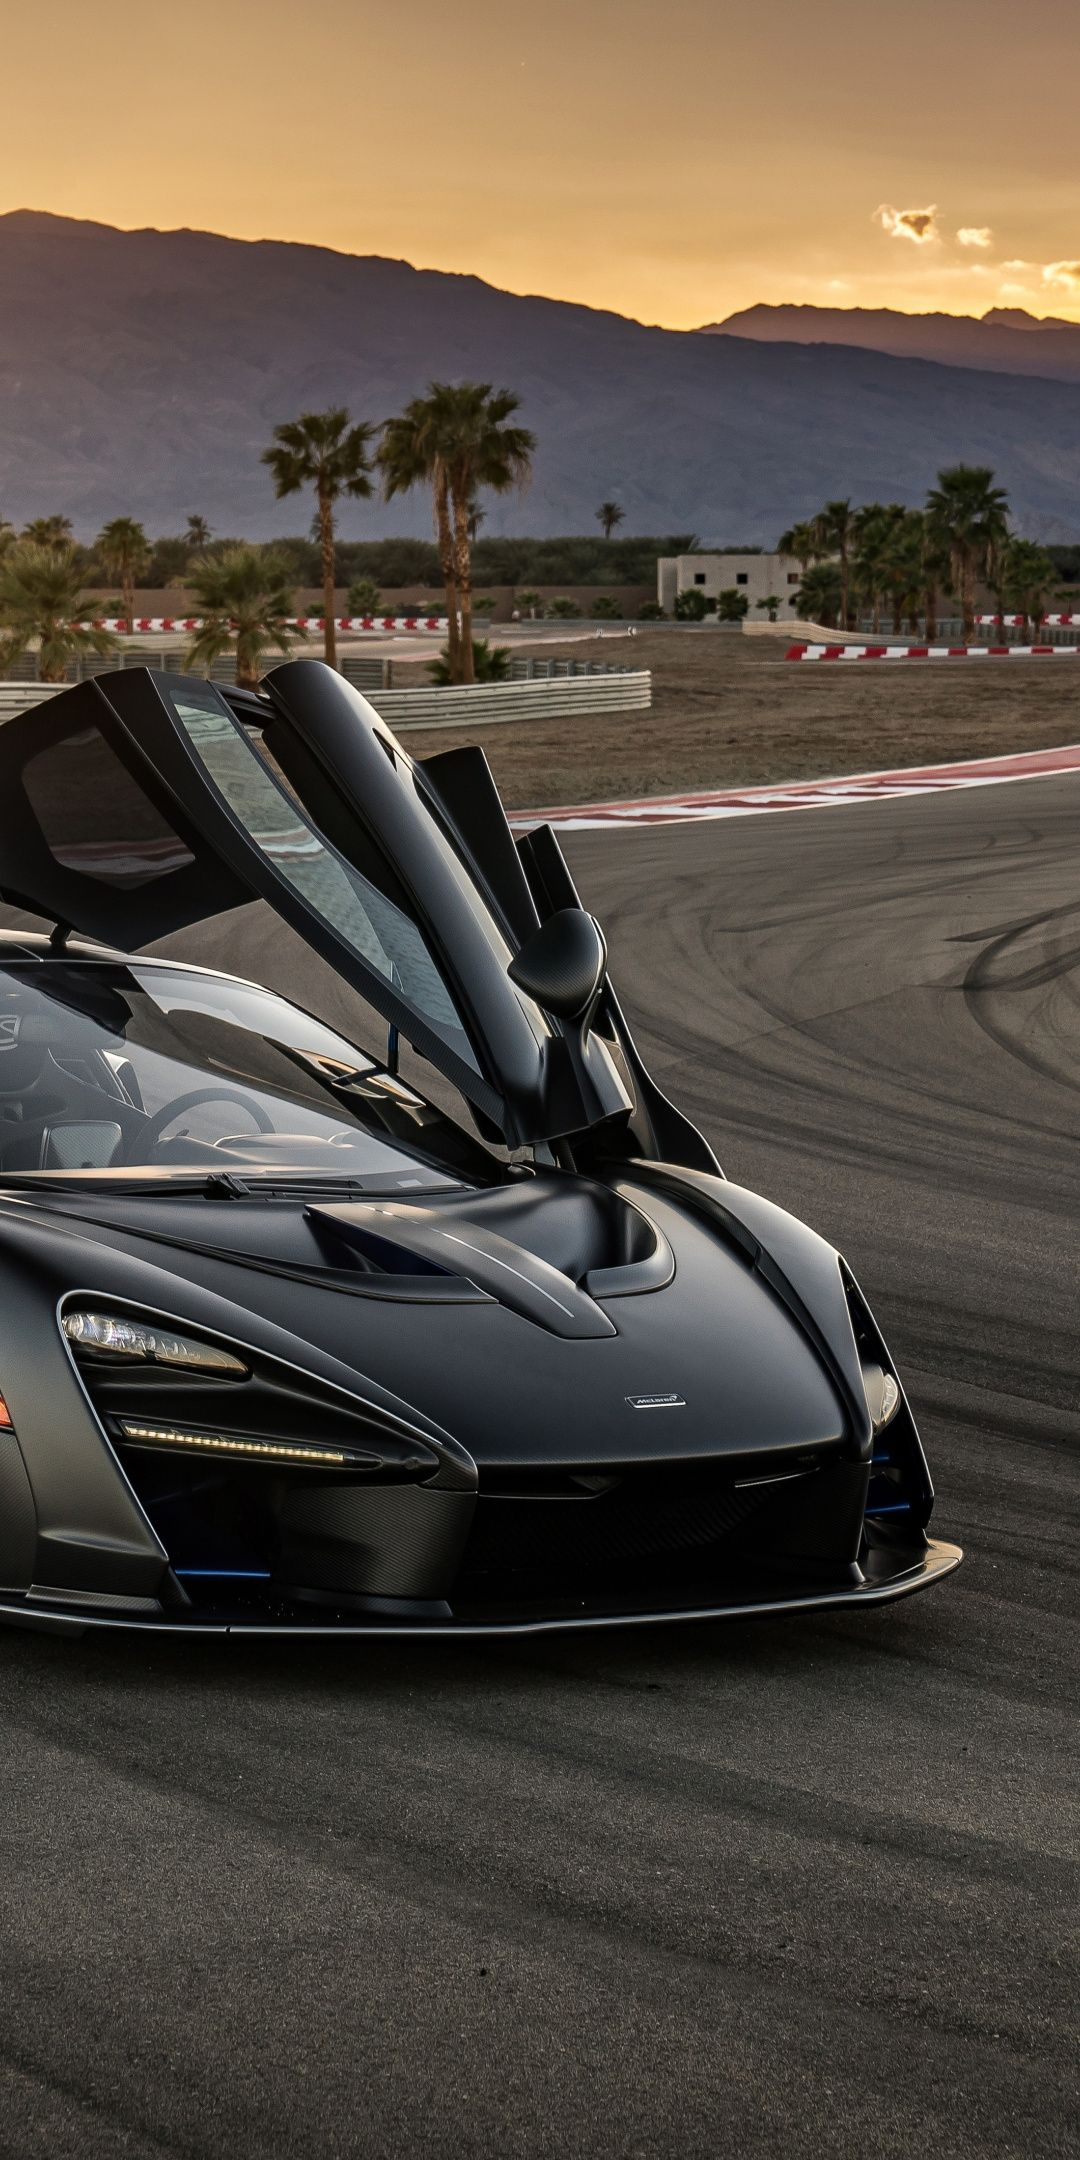 Black Mclaren Senna On Road 1080x2160 Wallpaper Car Wallpapers Mclaren Cars Sports Car Wallpaper